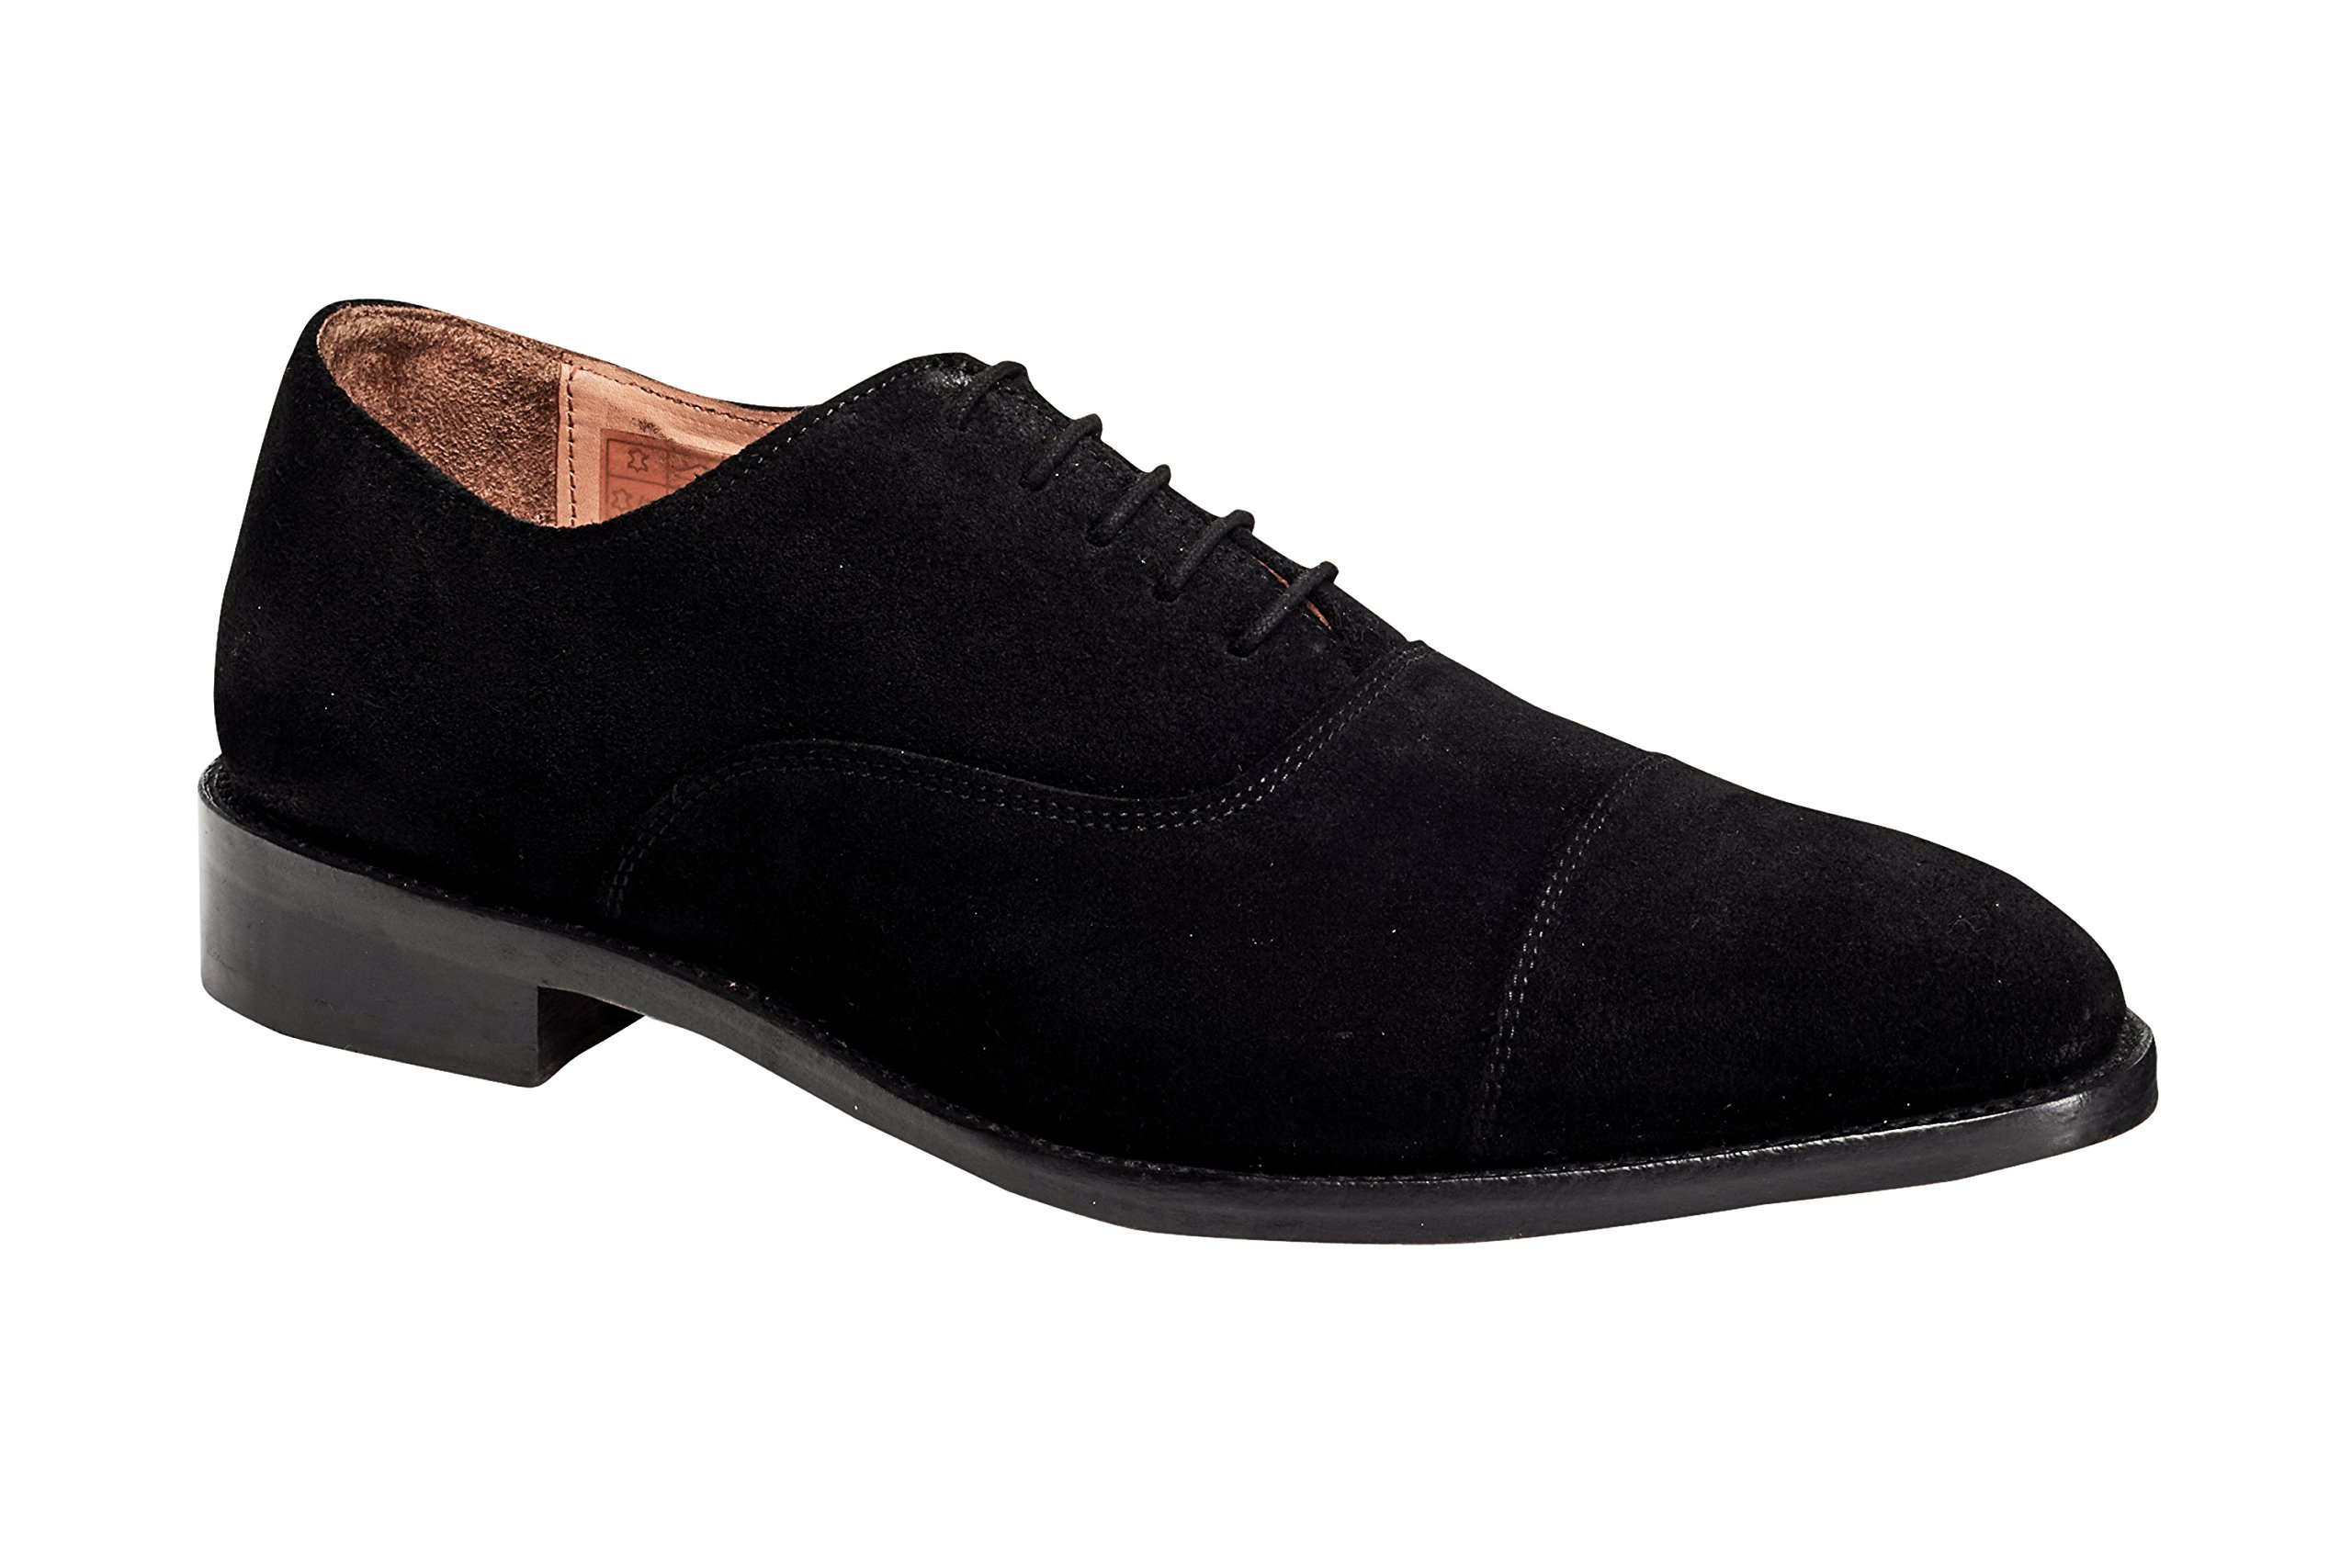 Anthony Veer Mens Clinton Cap-toe Oxford Leather Shoe in Goodyear Welted Construction (9.5 D, Black - Suede) by Anthony Veer